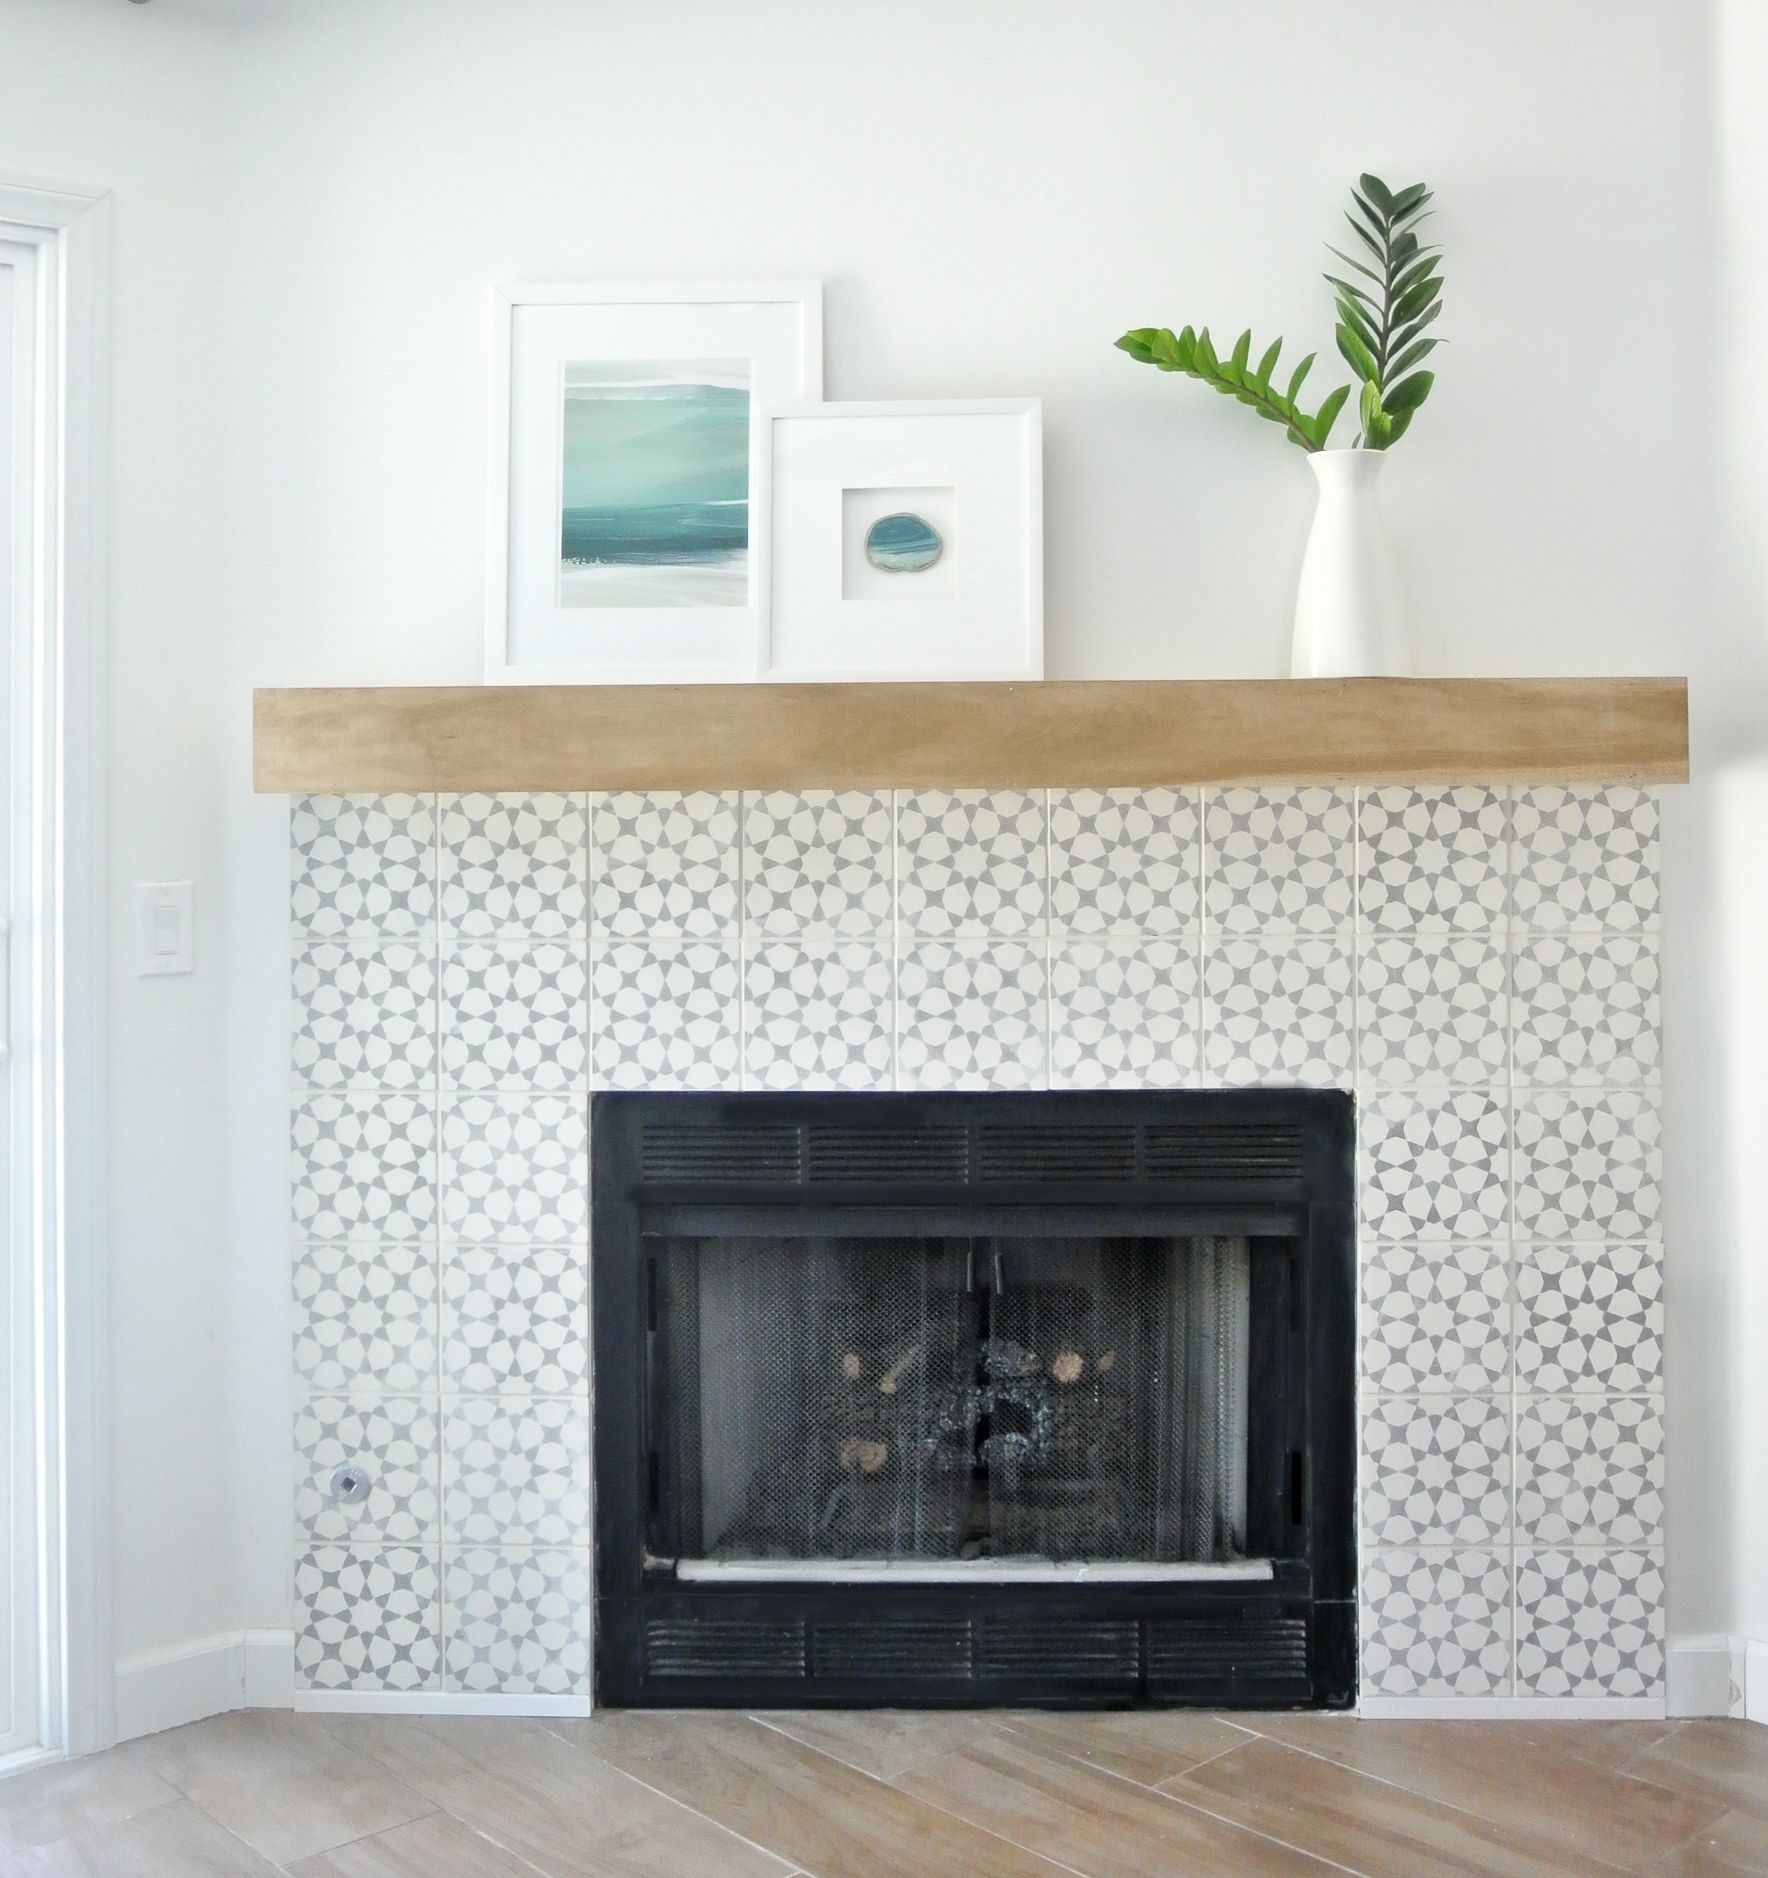 Uncategorized How To Tile A Fireplace diy fireplace makeover centsational girl cement tile ideas makeover